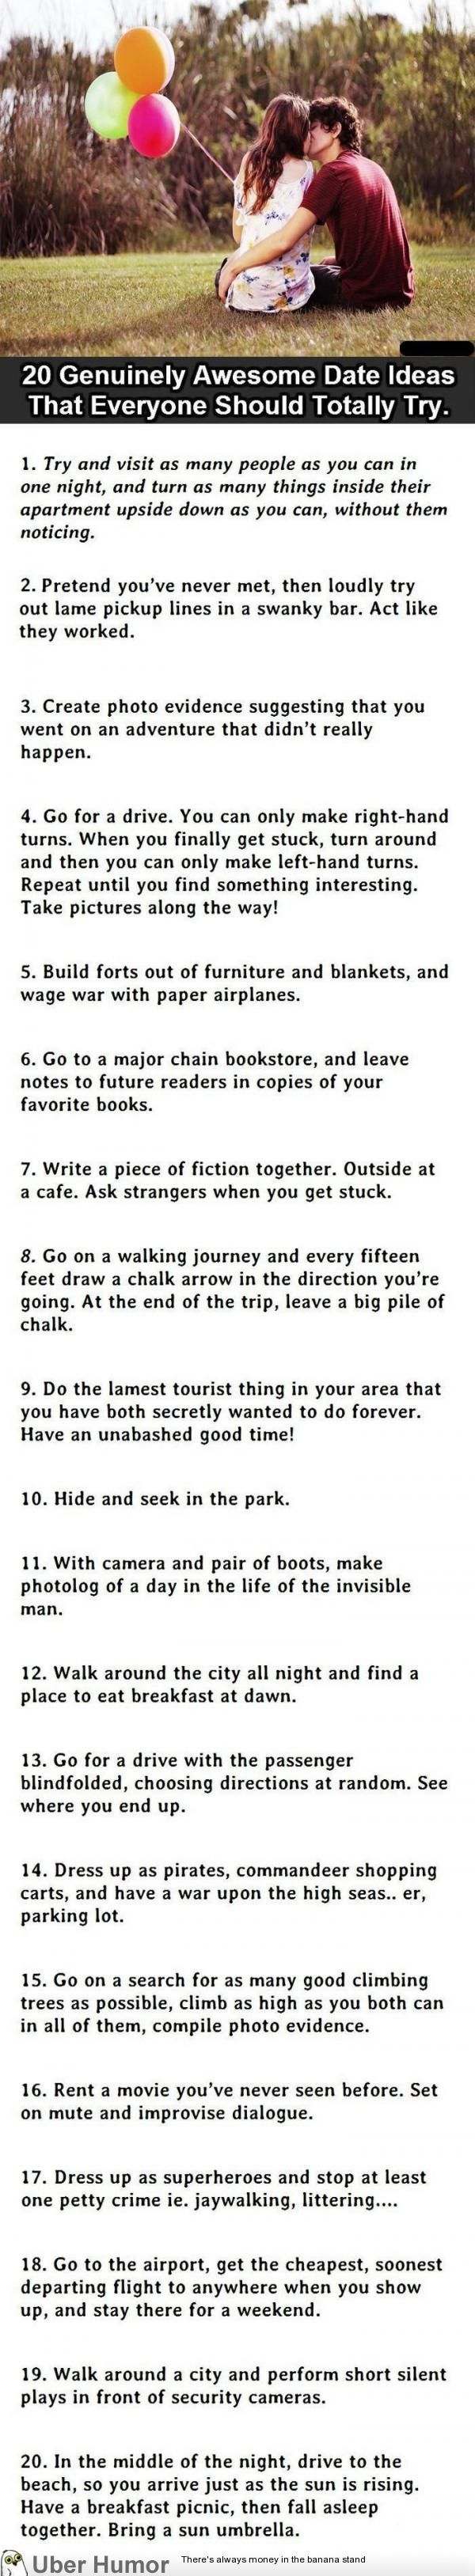 Fun things to do with your significant other/best friend/etc.